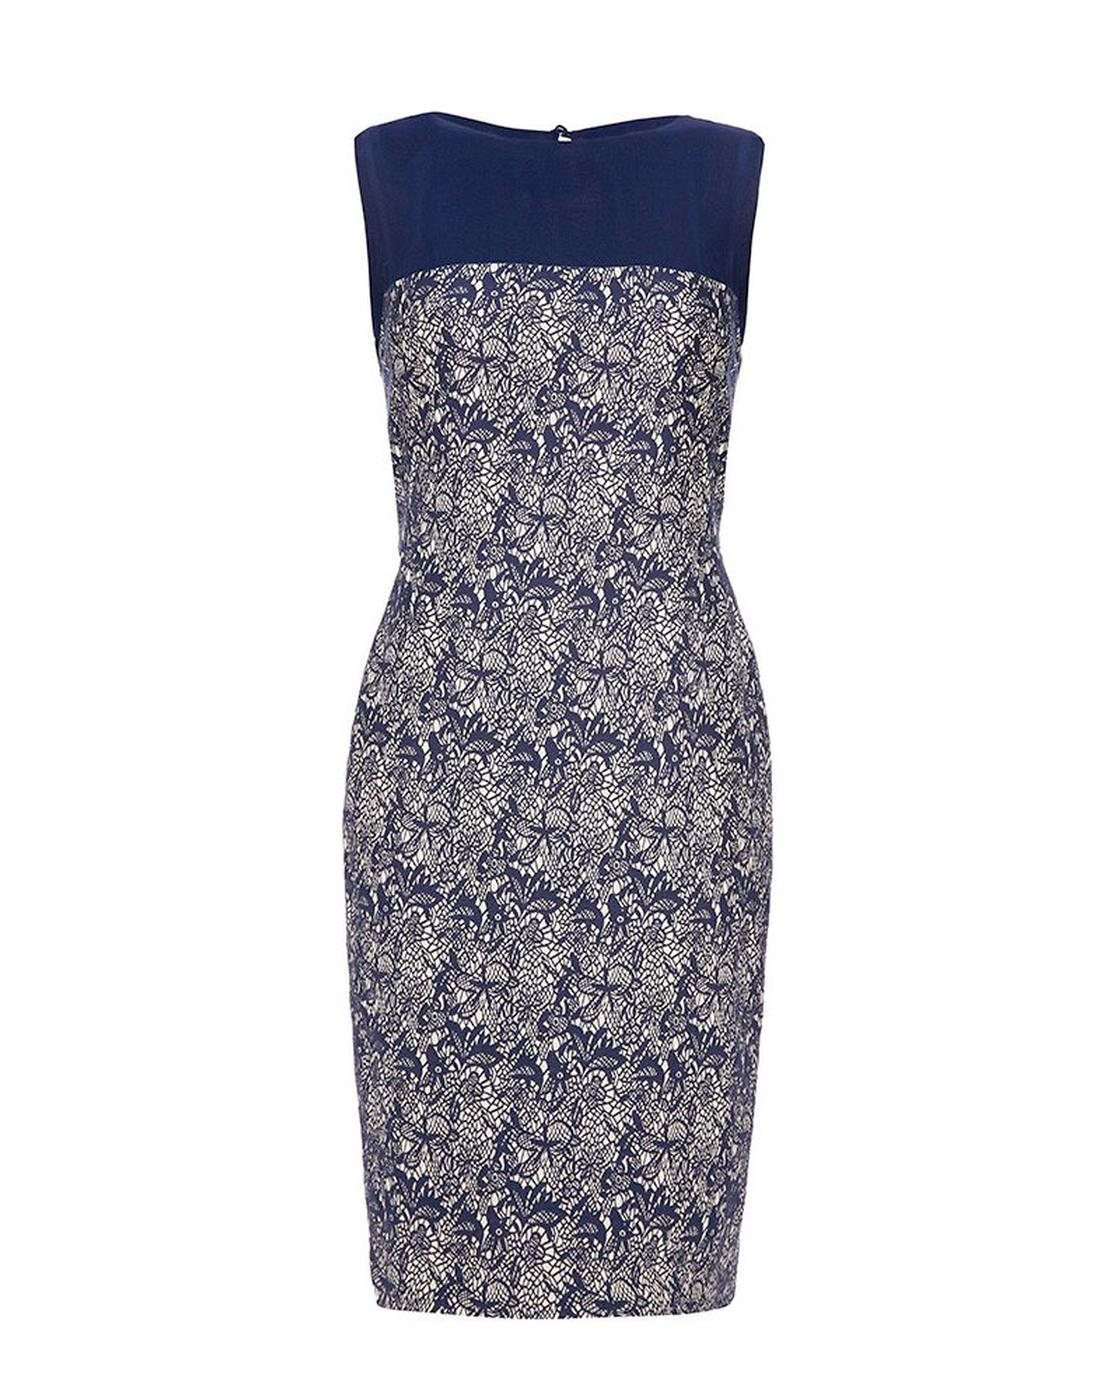 Wilmore FEVER Retro 60s Lace Effect Pencil Dress